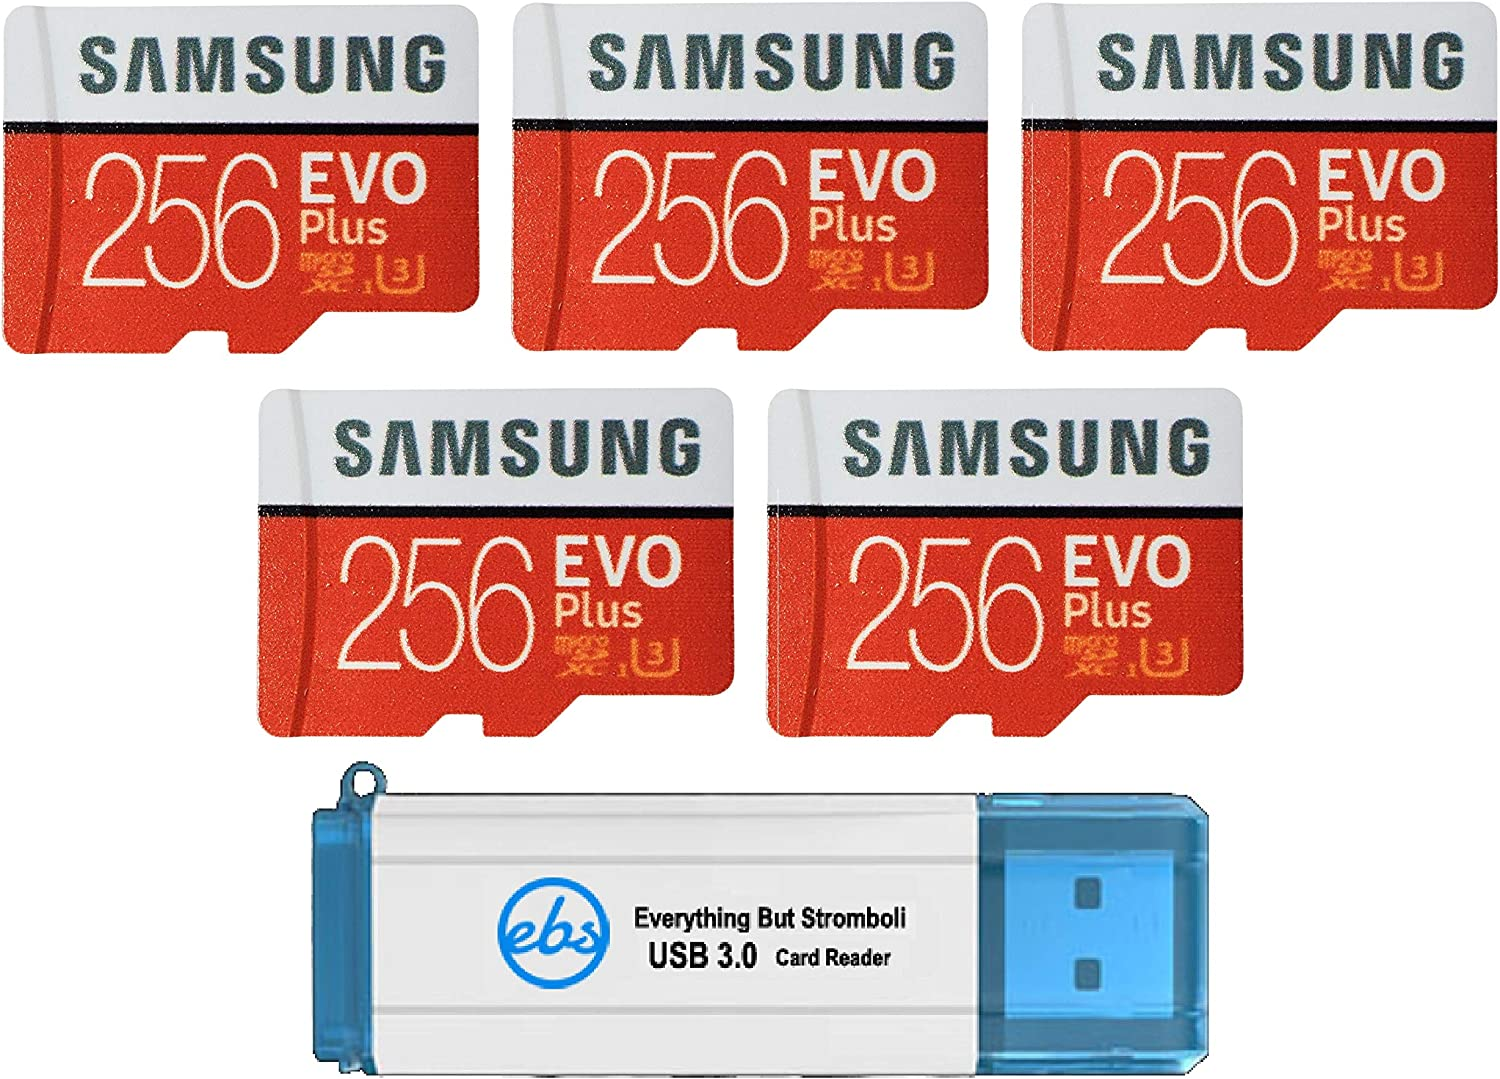 Samsung 256GB famous Evo Plus MicroSD Card We OFFer at cheap prices Pack 5 Class 1 EVO+ Bundle